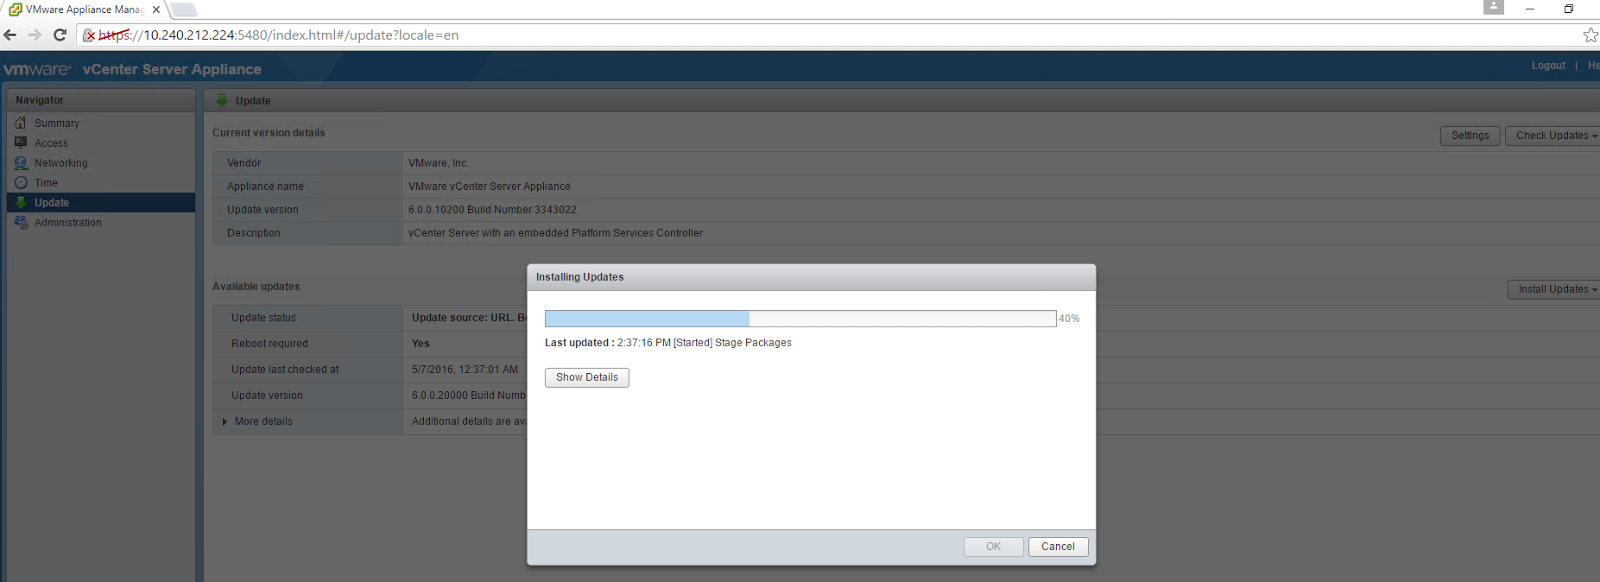 Share the knowledge: Updating vCenter 6 0 to 6 0 U2